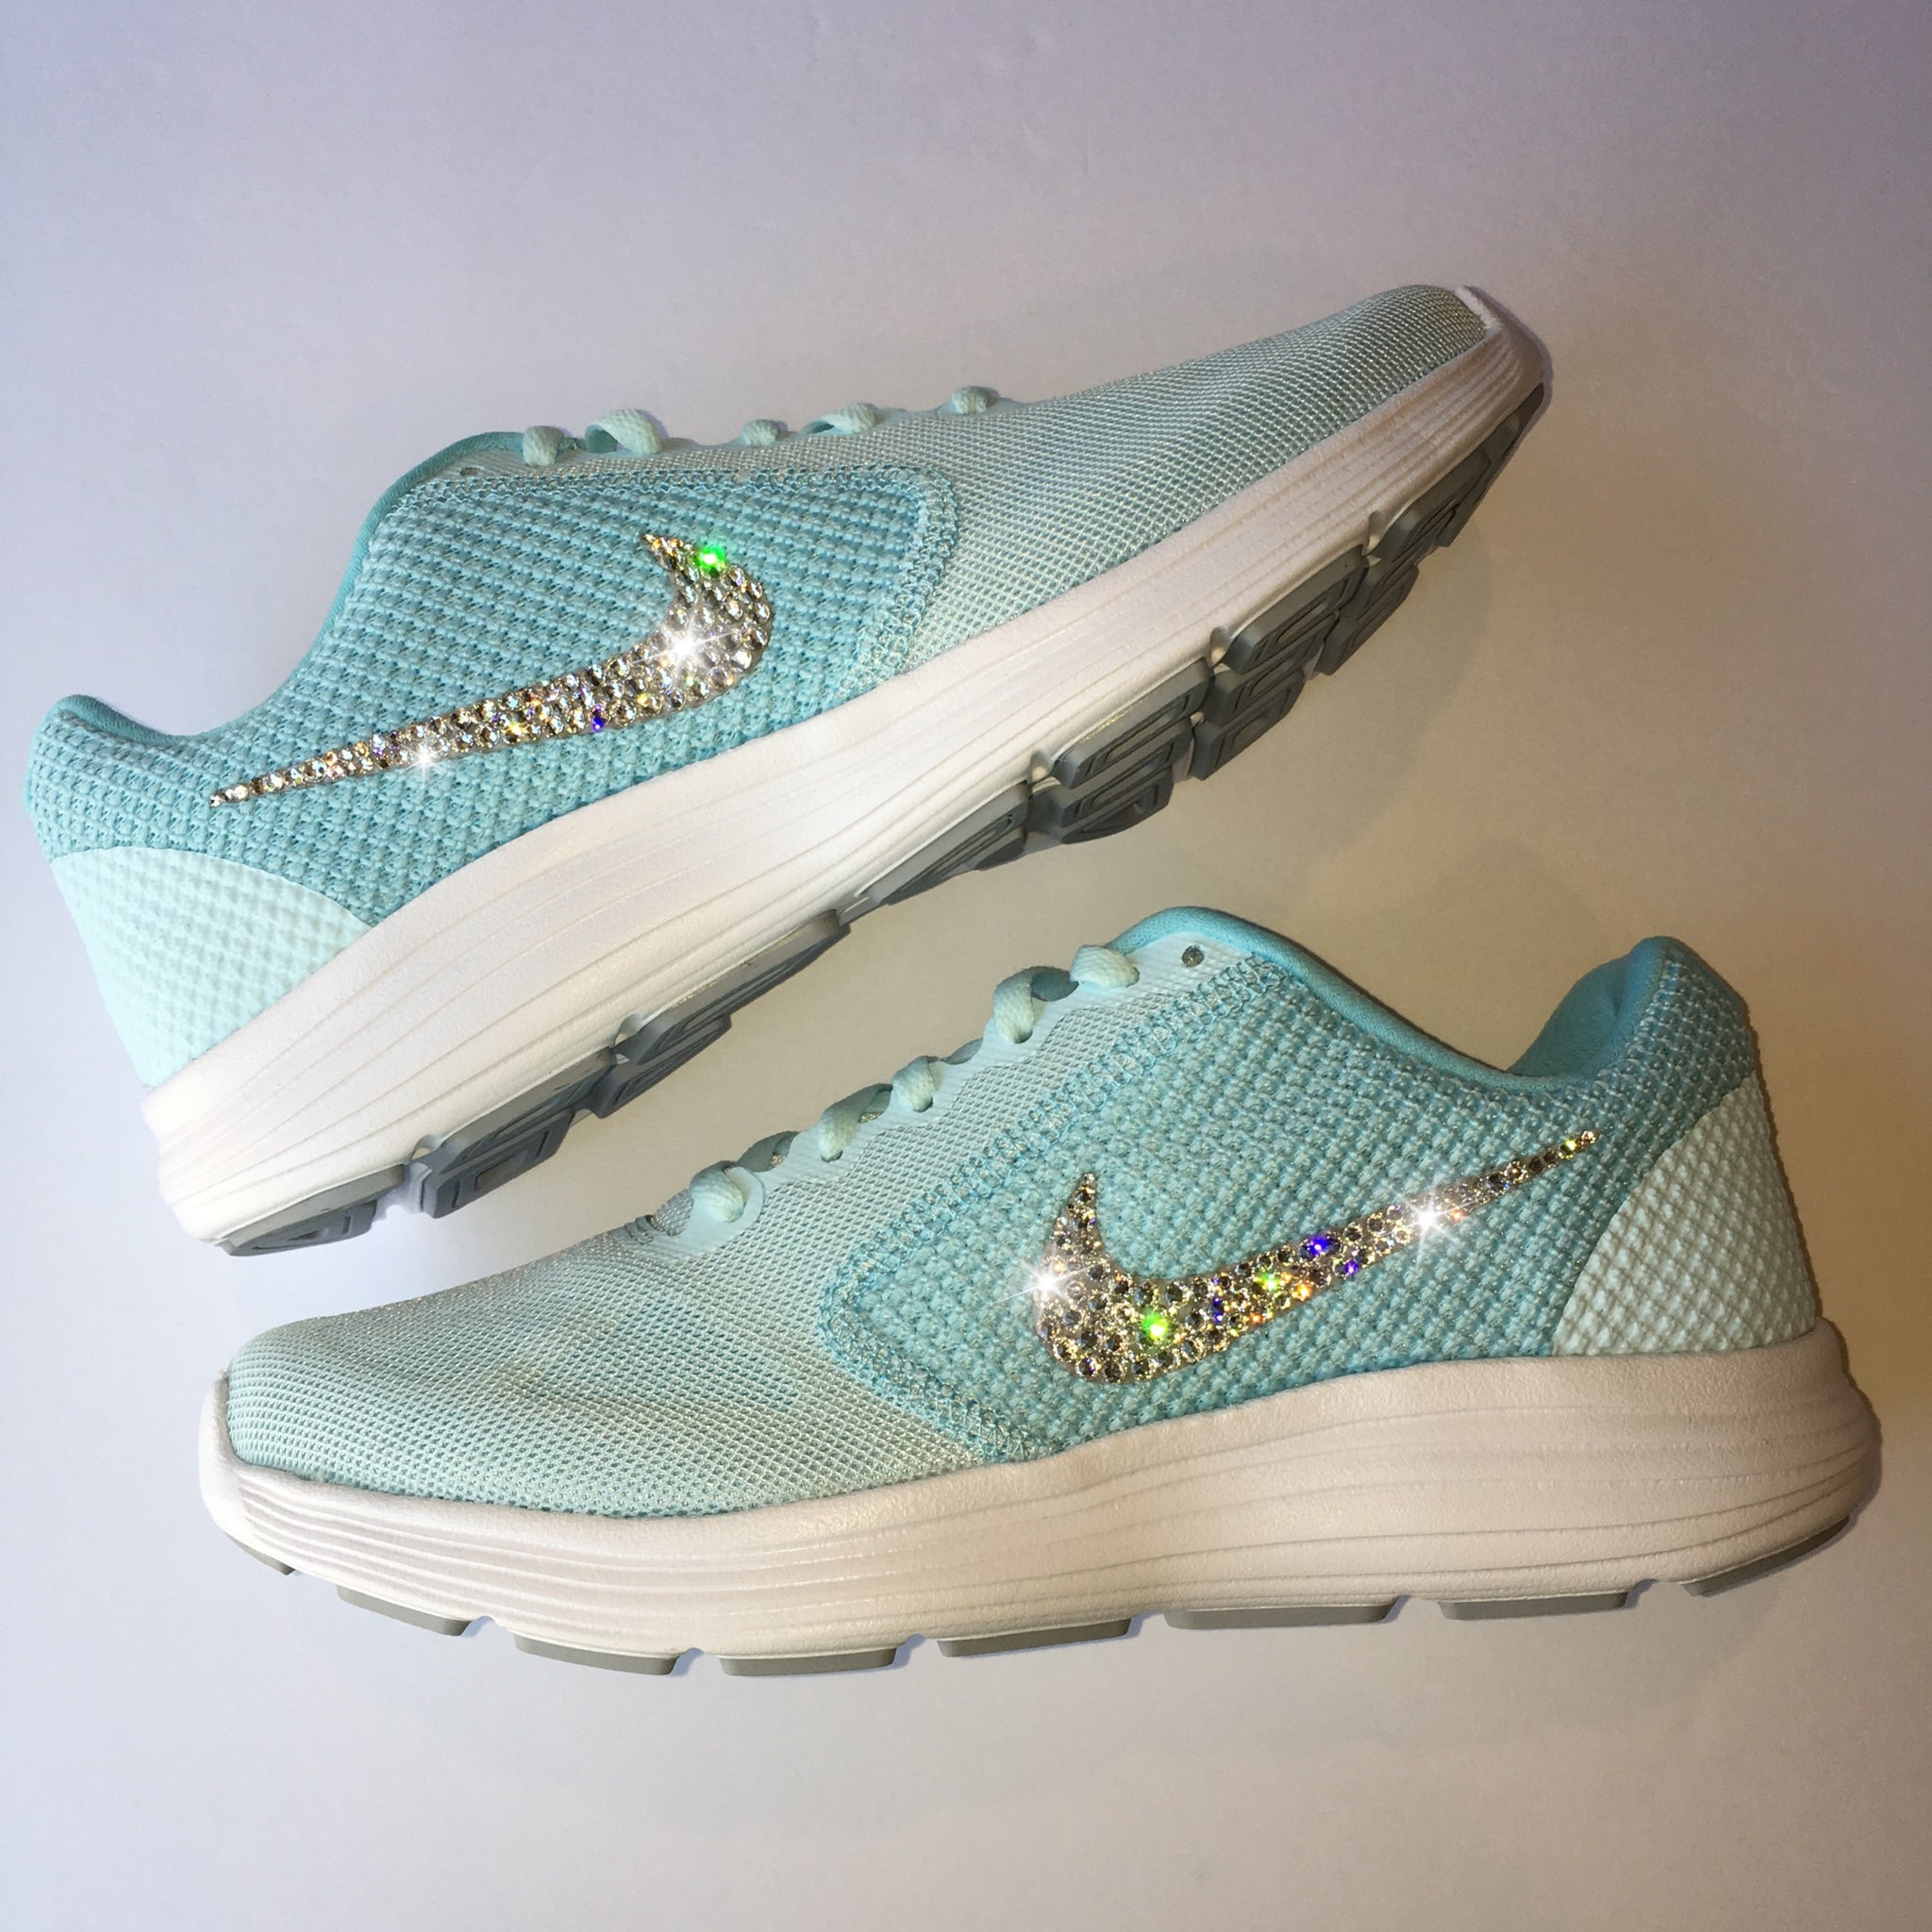 39a774a97386 Bling Nike Revolution 3 Shoes with Swarovski Crystals   Tiffany Blue    Bedazzled with Authentic Swarovski